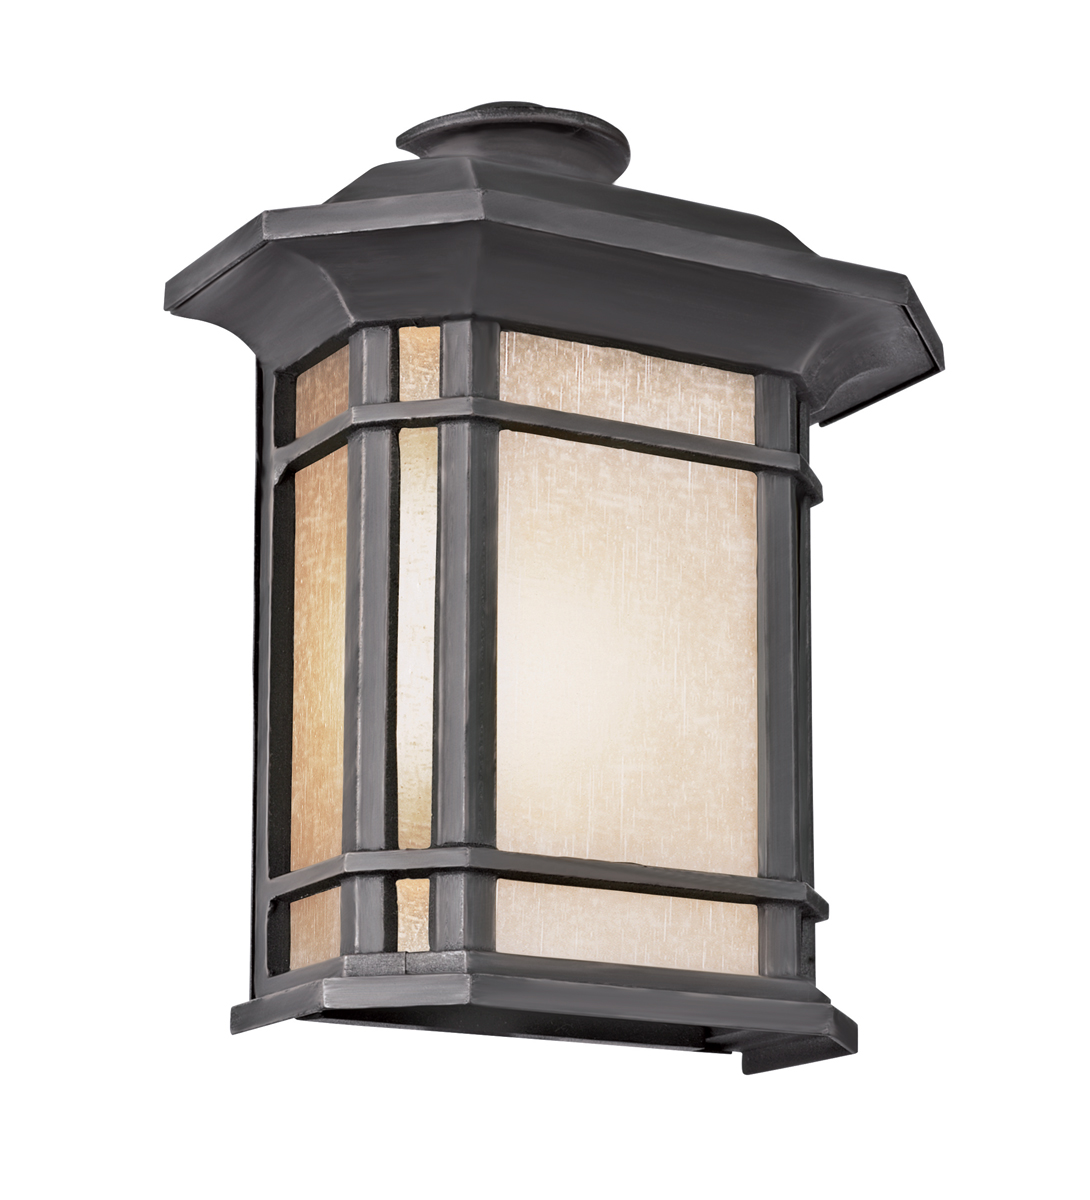 trans globe outdoor wall sconces lighting fixtures lights and home lighting - Trans Globe Lighting